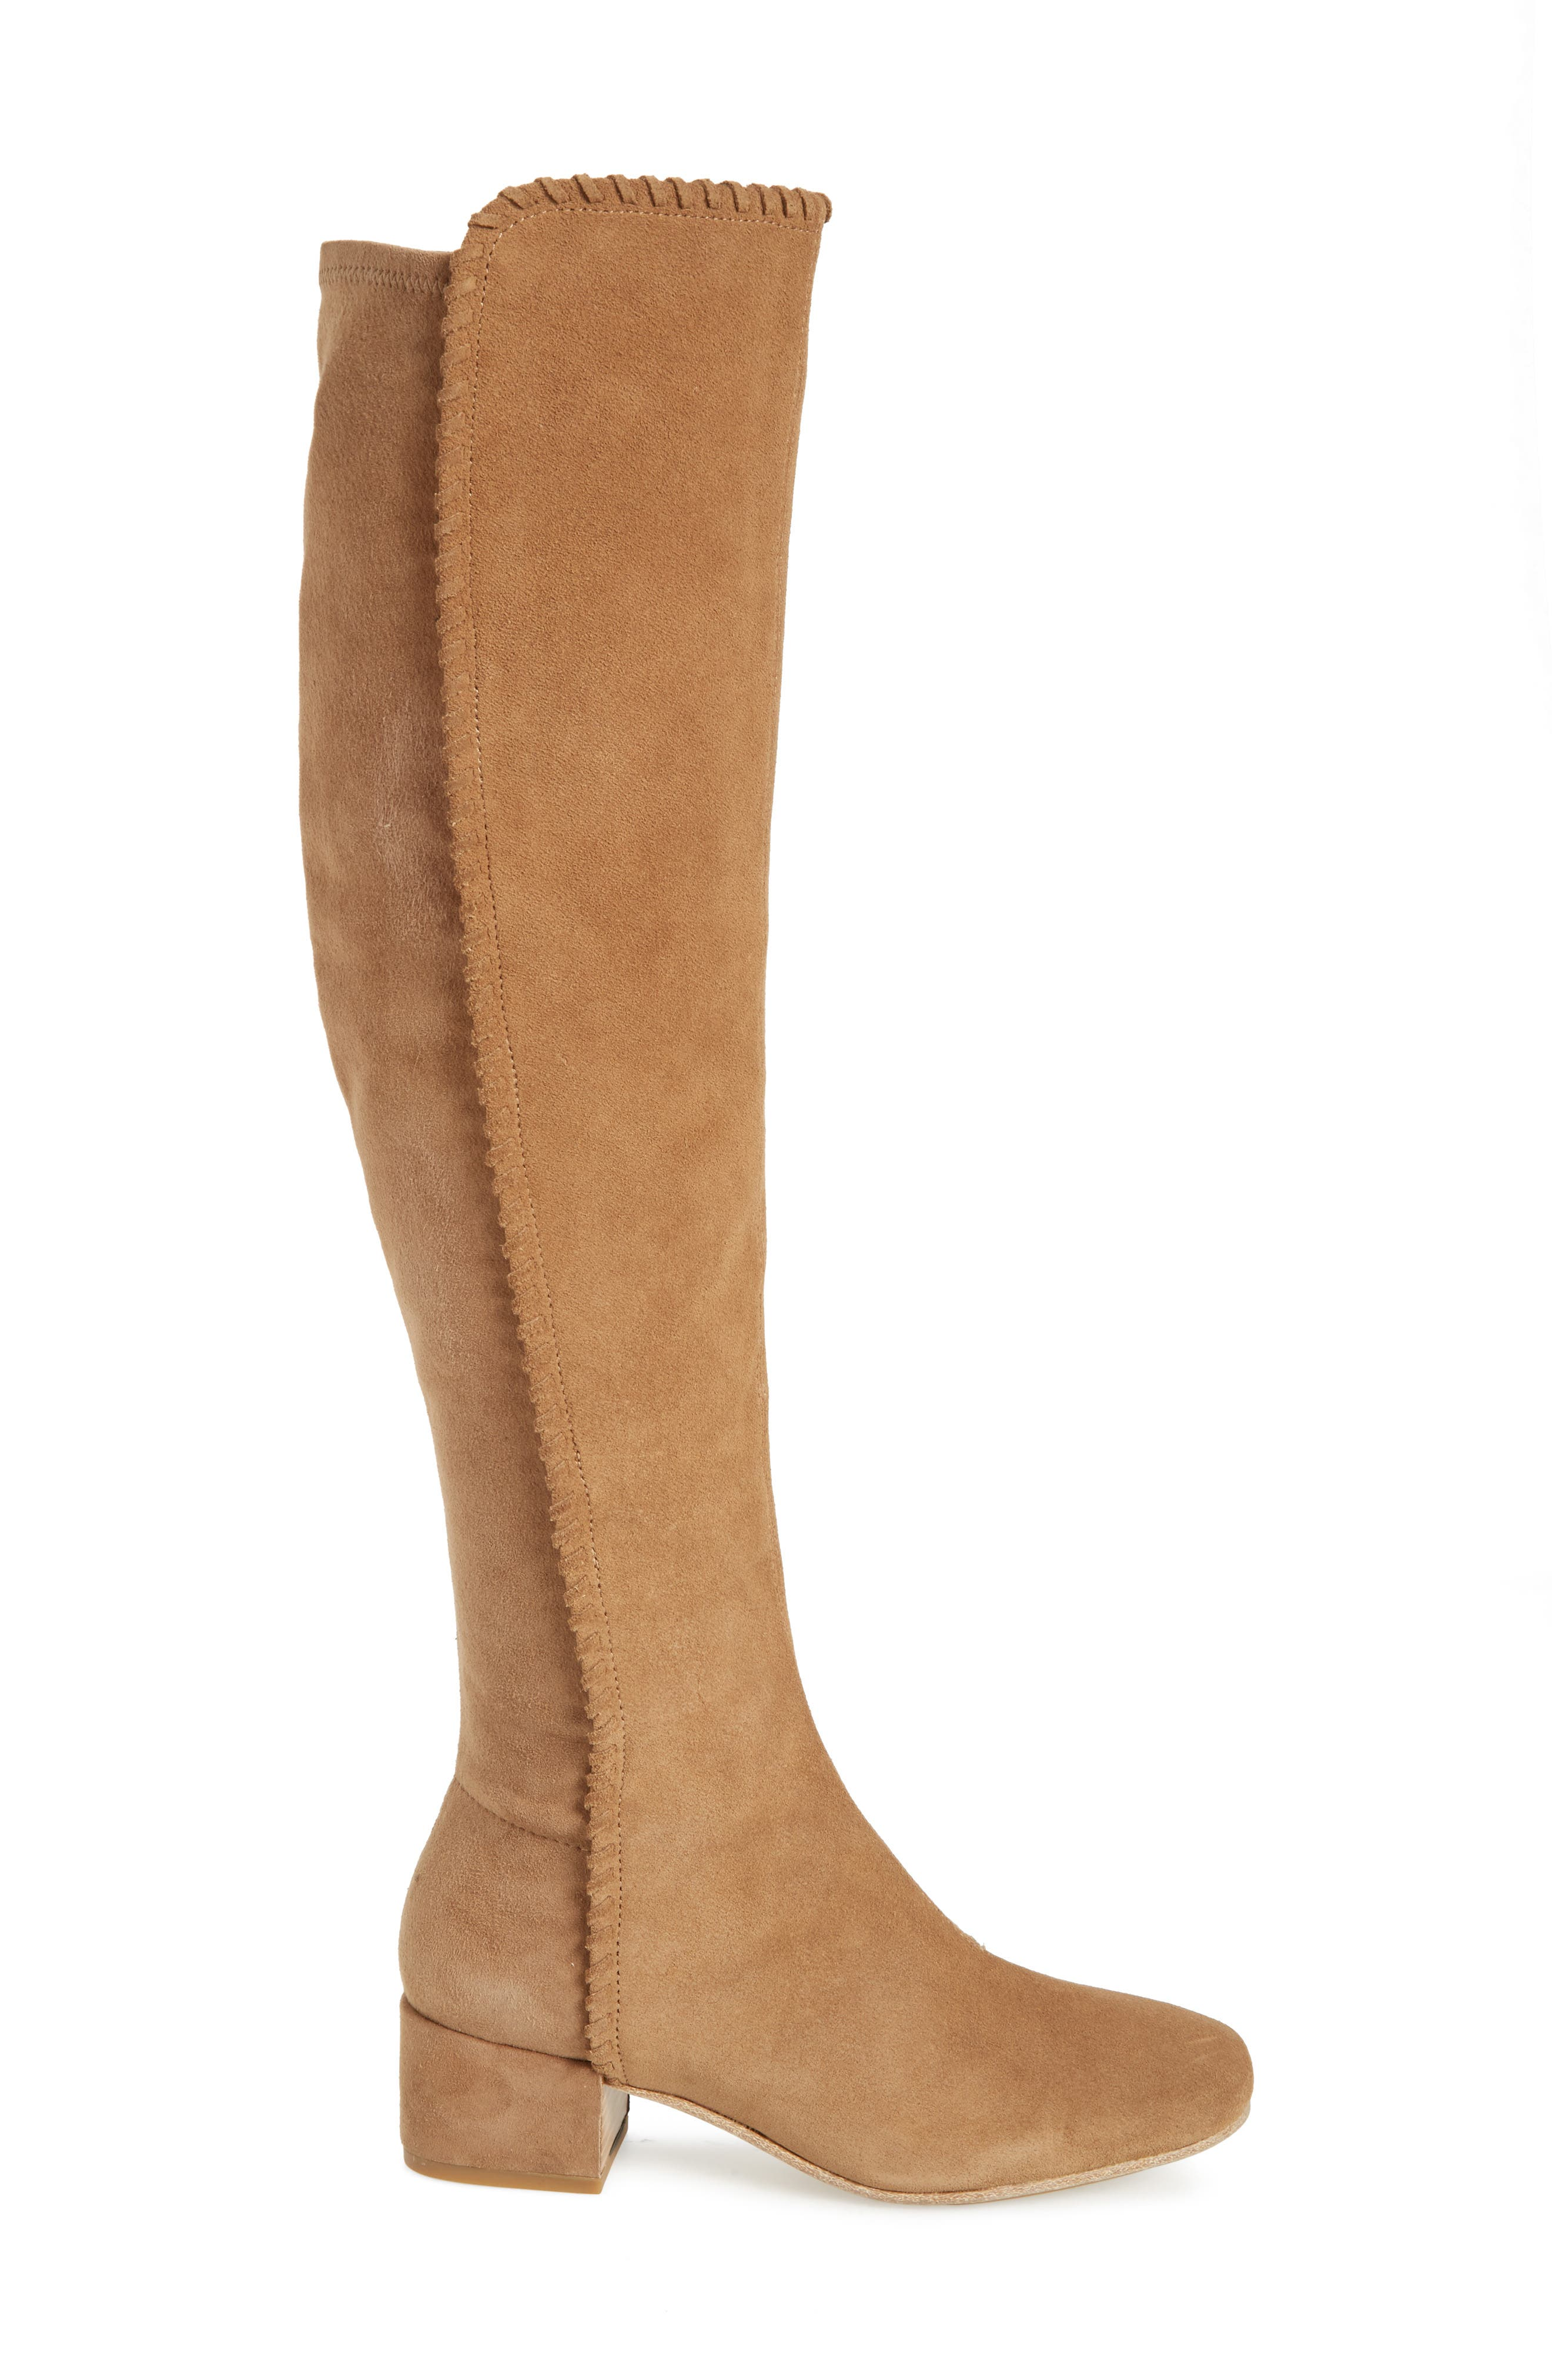 Emery Over the Knee Boot,                             Alternate thumbnail 3, color,                             Camel Suede